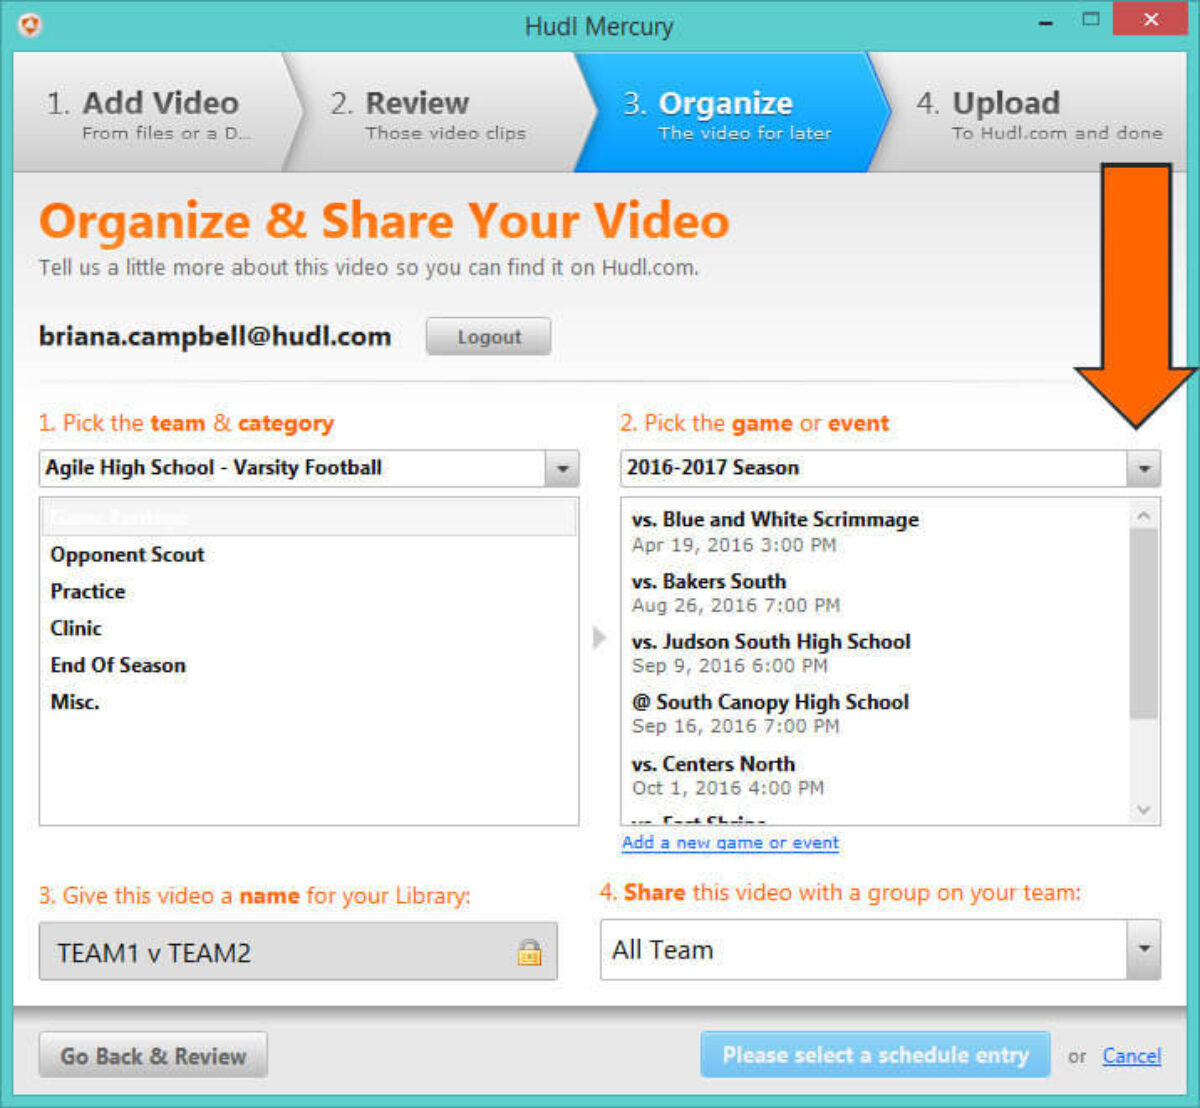 how to Download Hudl Mercury to Upload Video - Use the drop-down to select the cor­rect season.